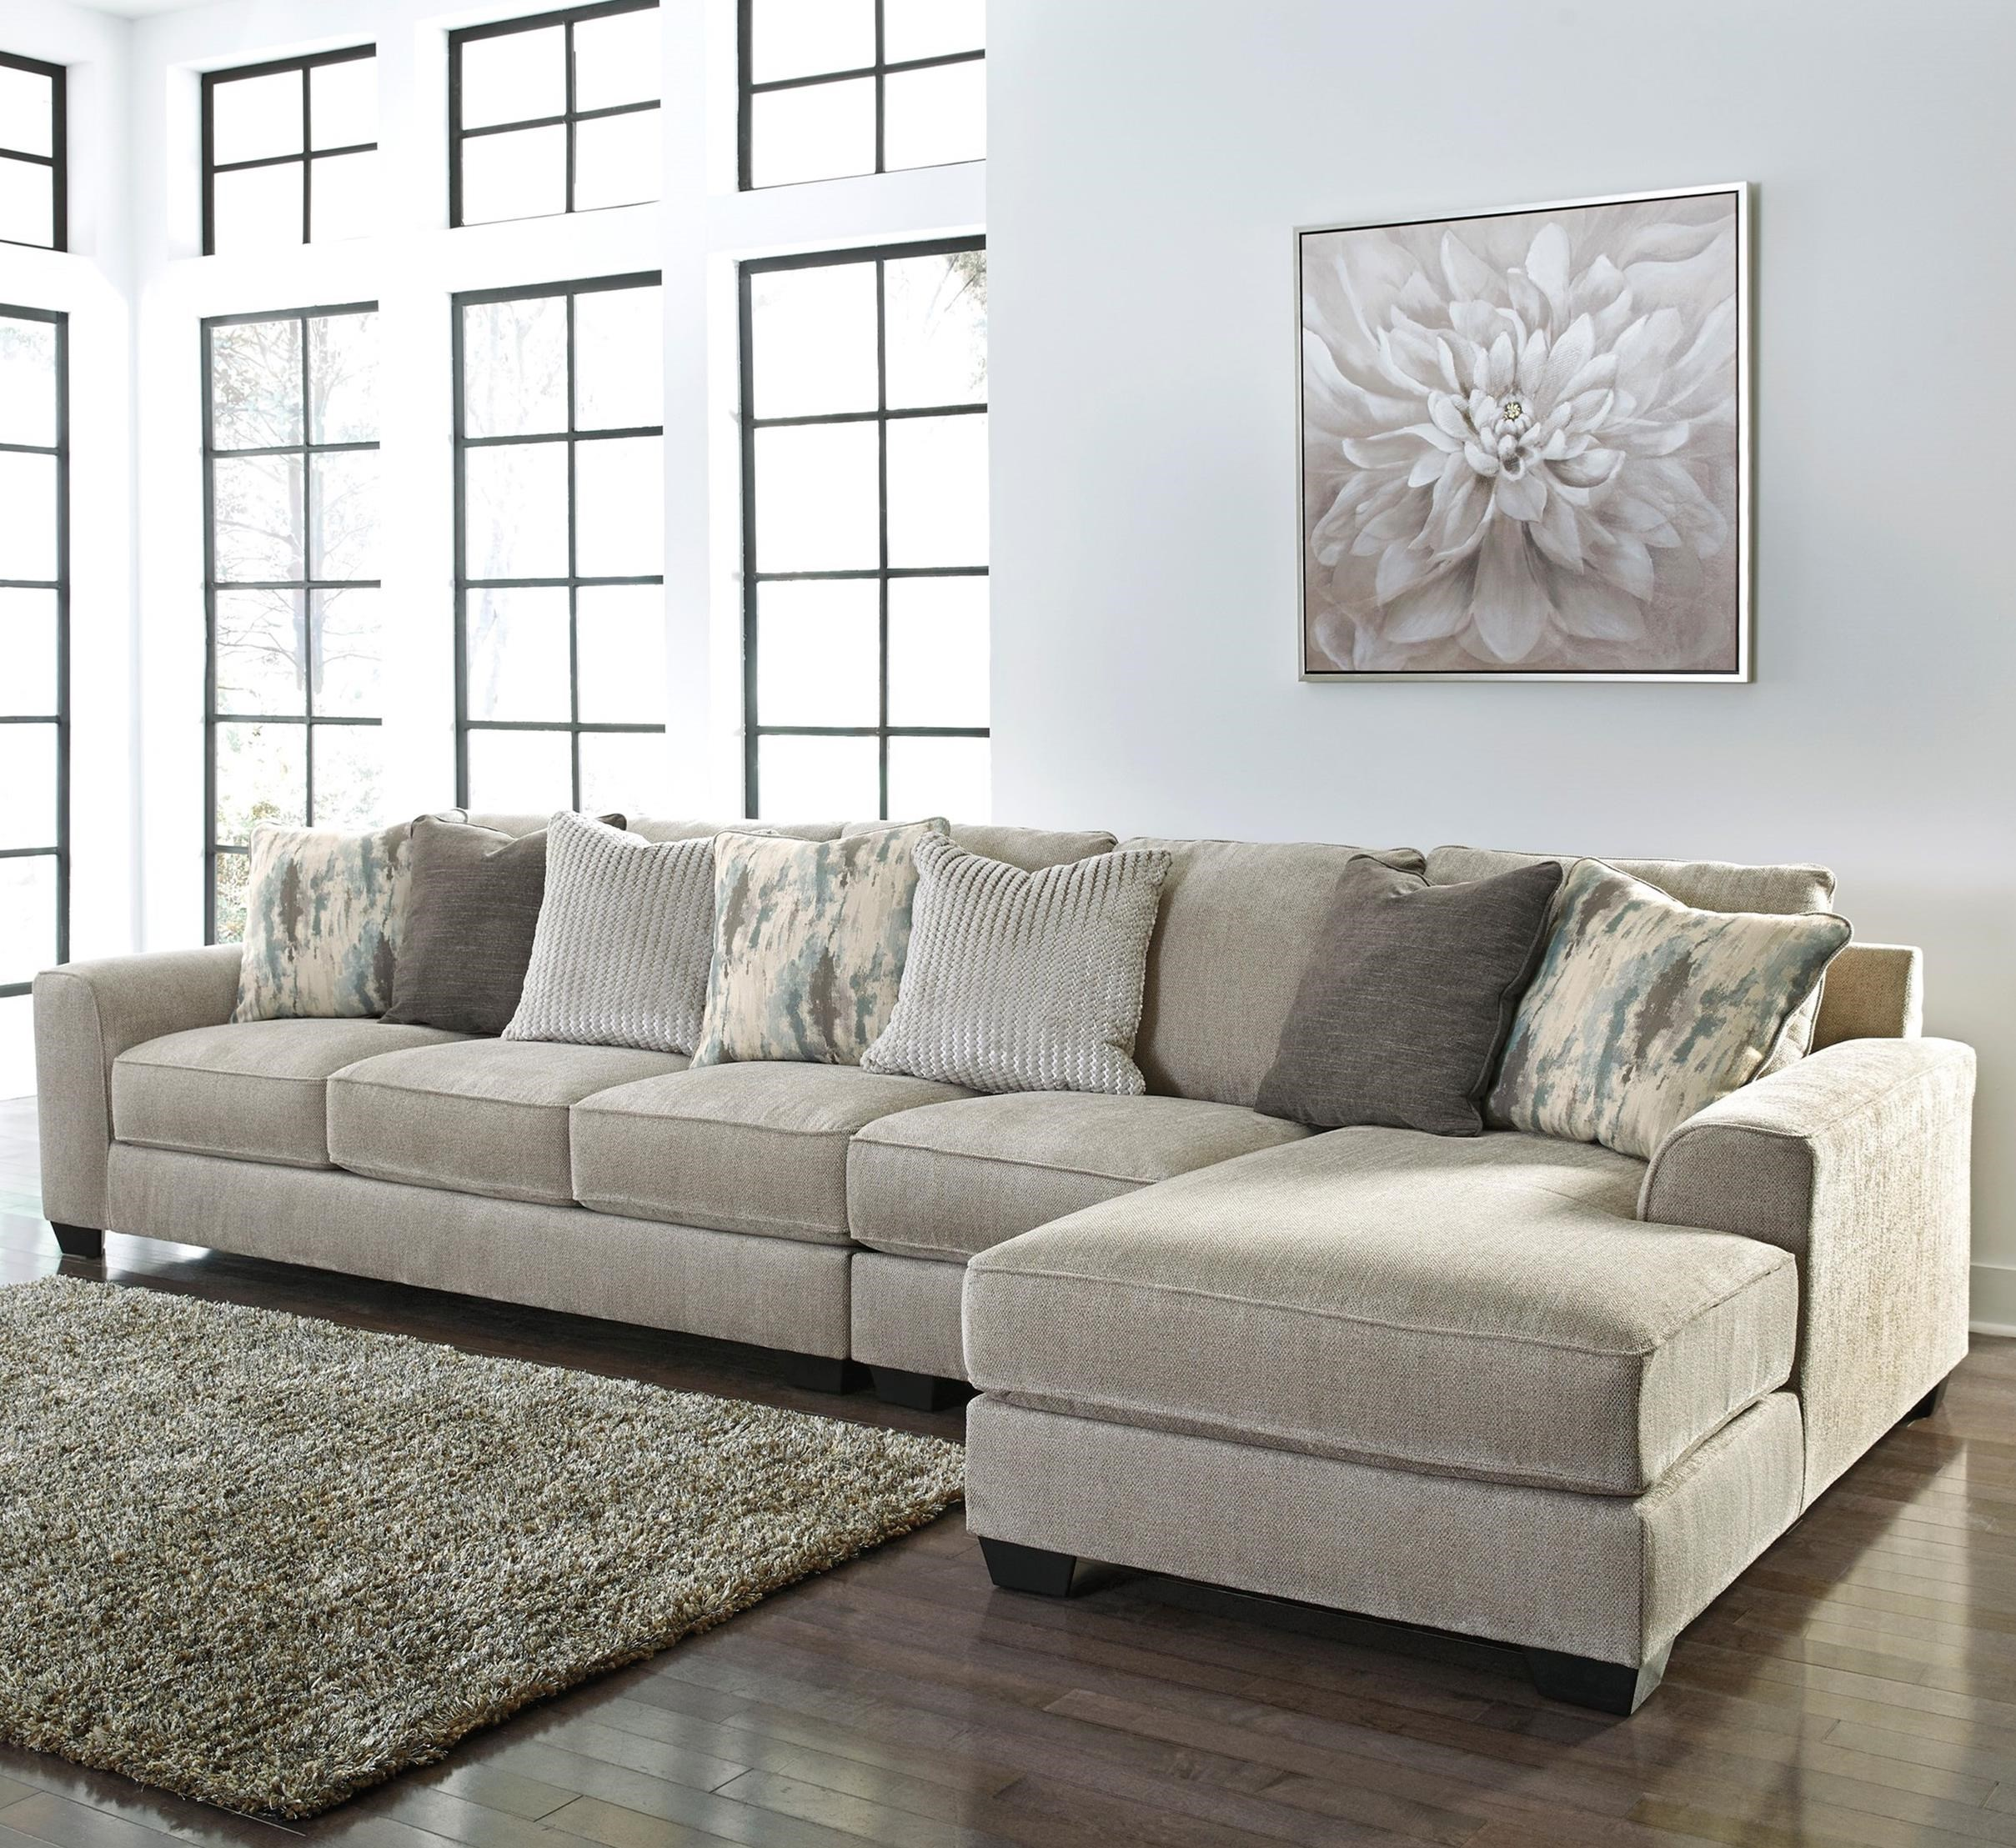 Ardsley 3-Piece Sectional with Right Chaise by Benchcraft at Northeast Factory Direct